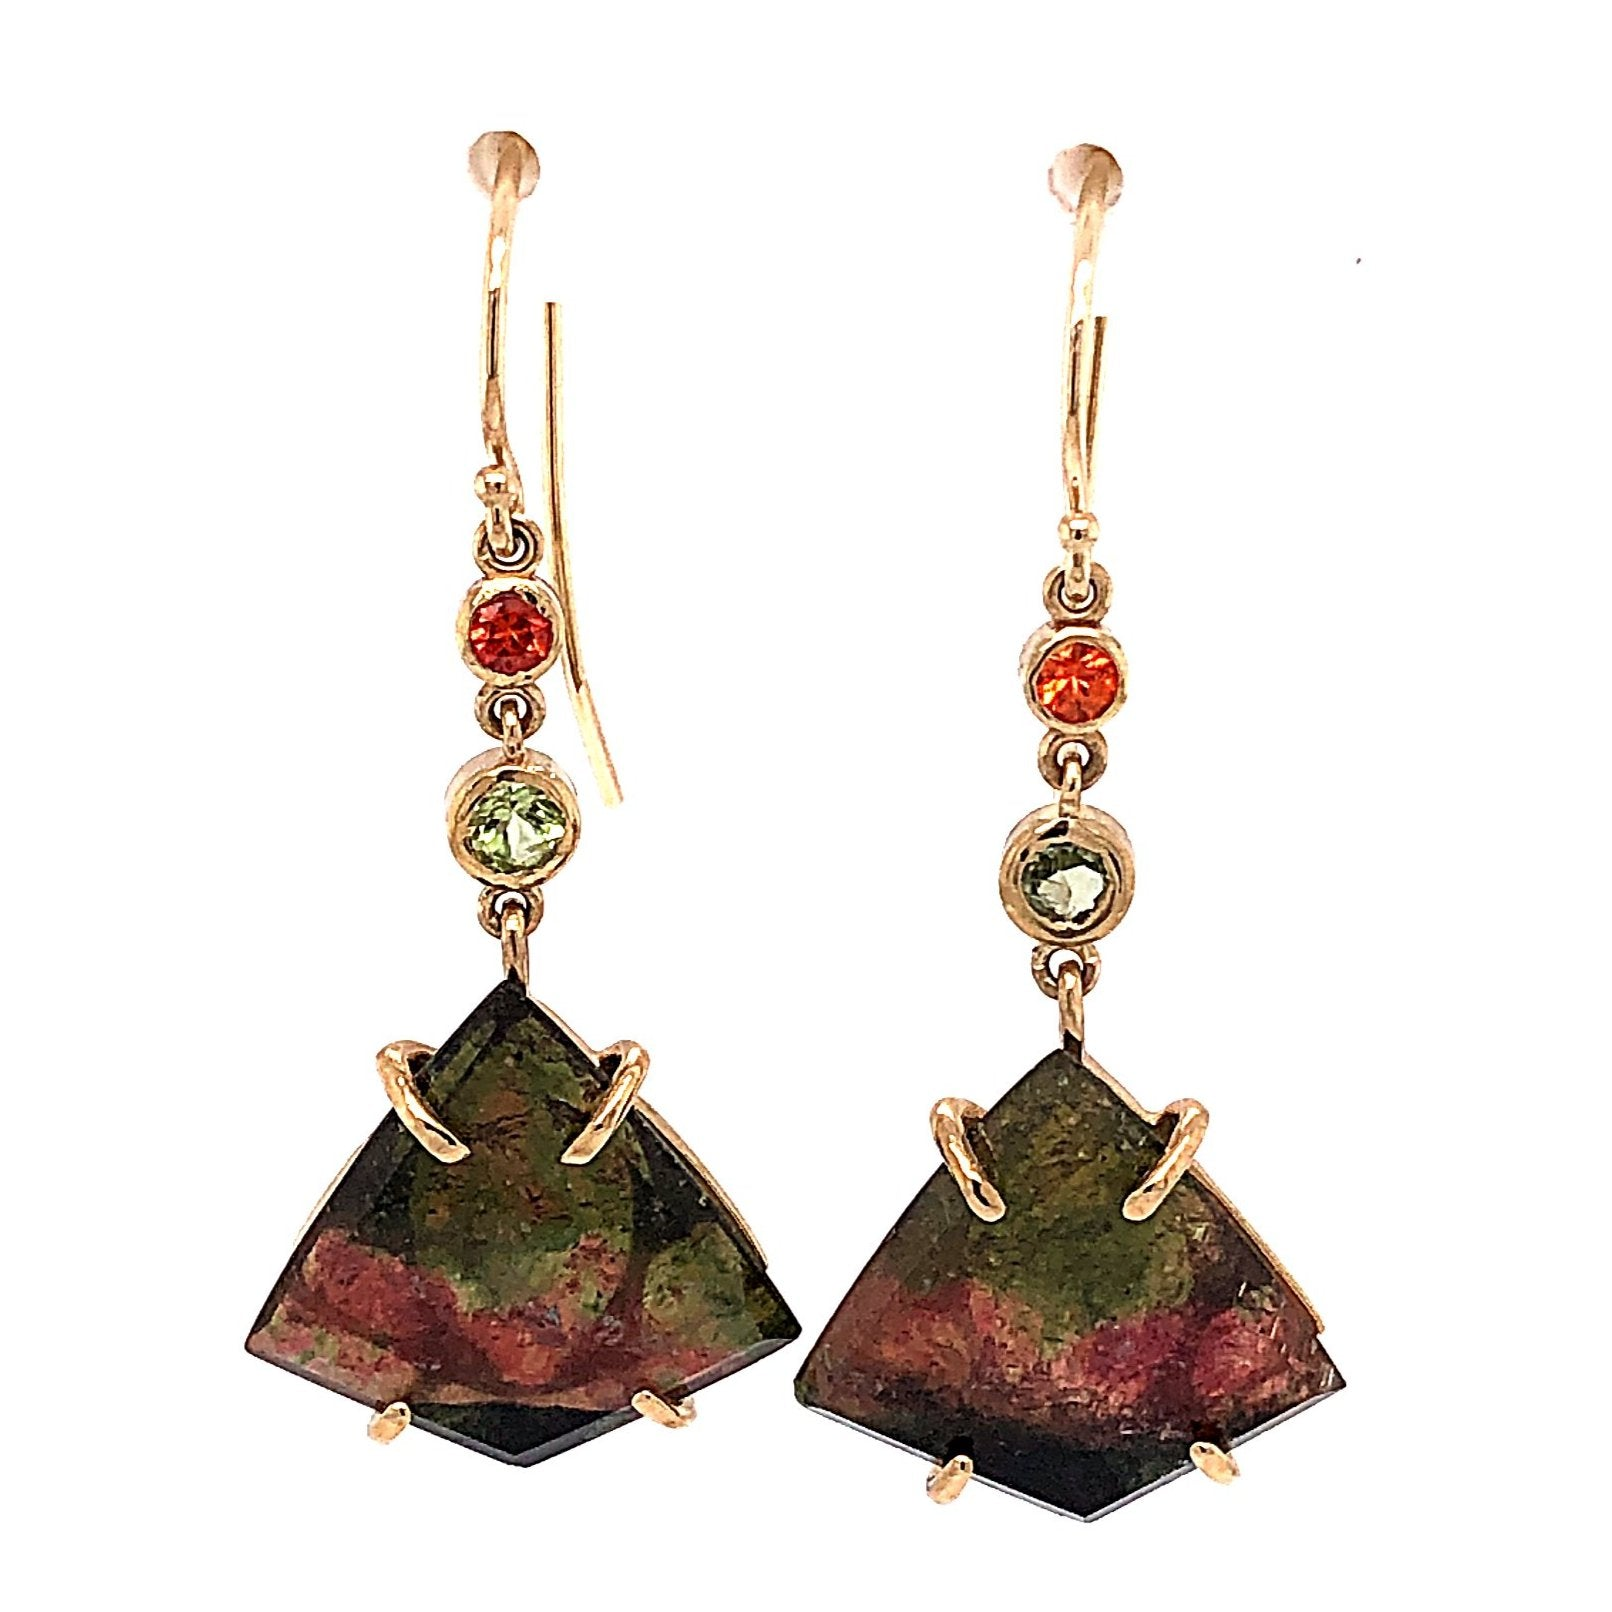 Tourmaline, Sapphire, Peridot Earrings, Handmade in 14k Gold (One-of-a-Kind)